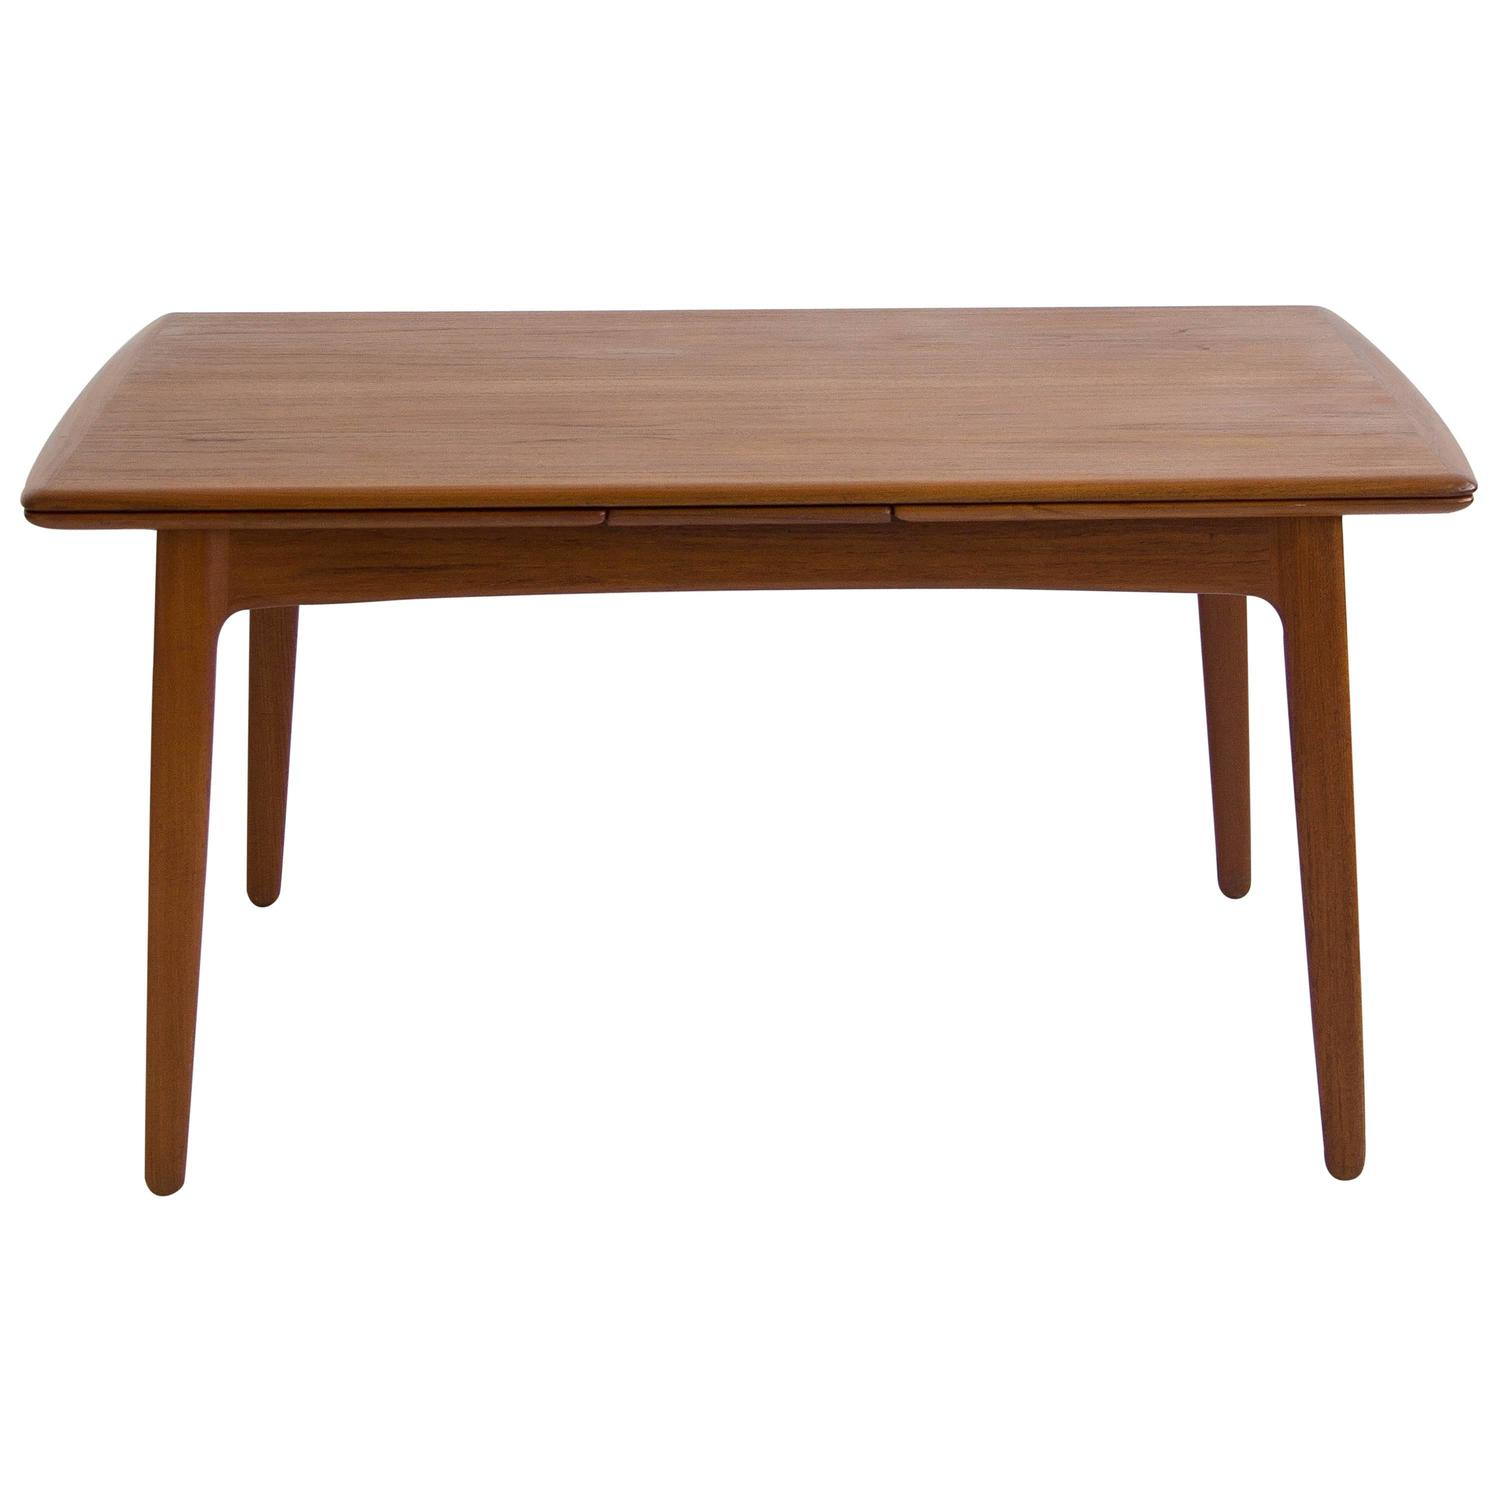 Svend madsen teak draw leaf dining table at 1stdibs for Dining room table replacement leaf